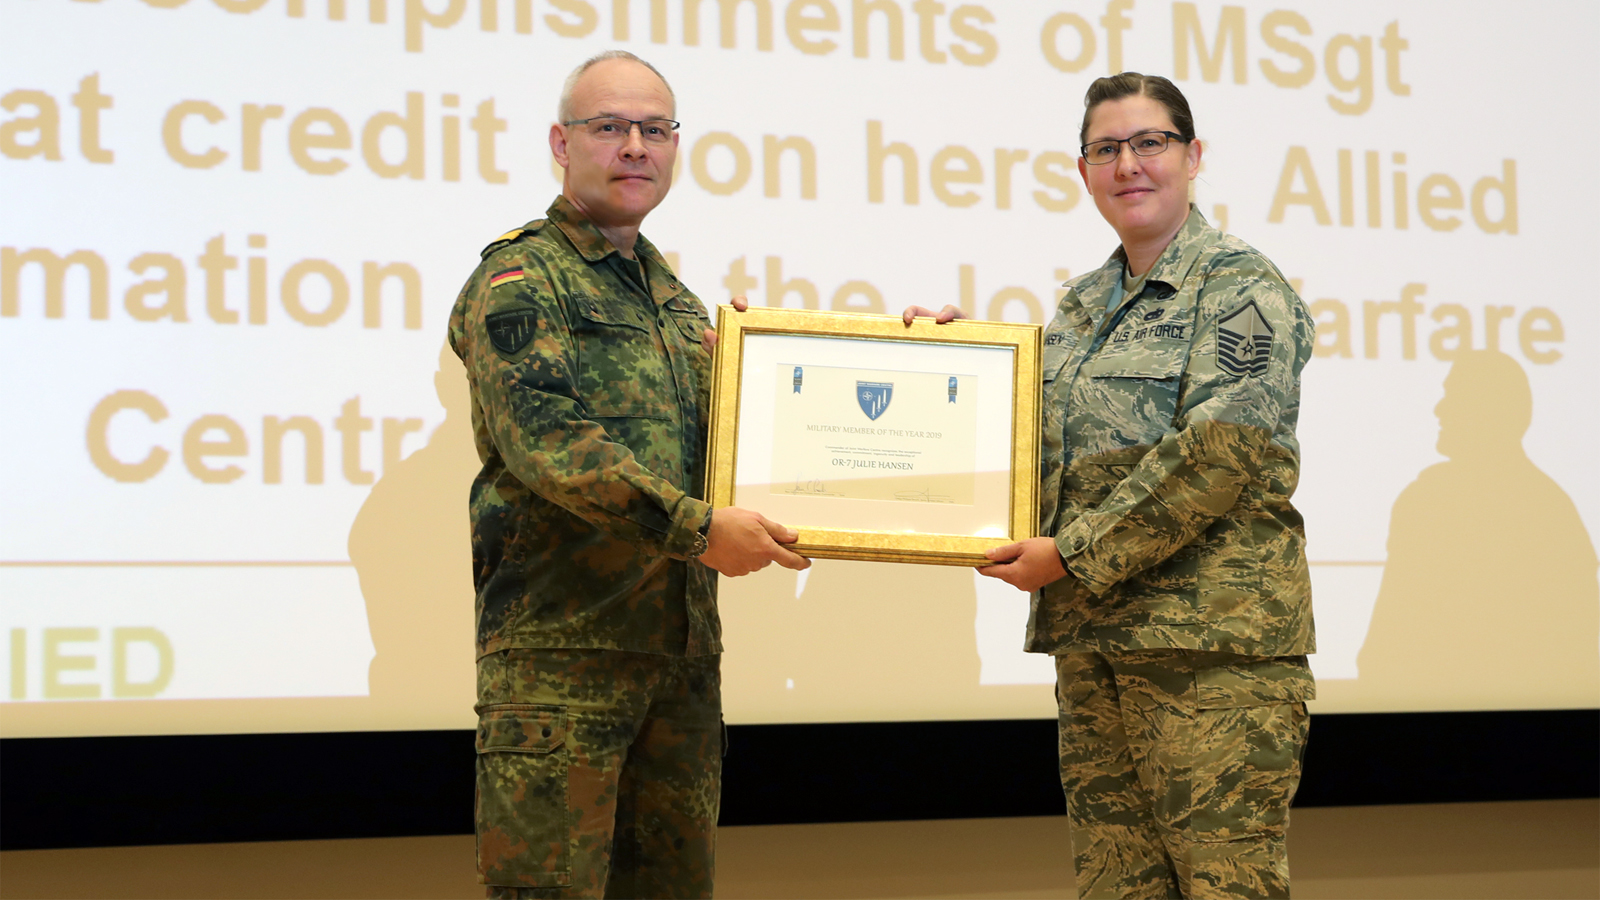 NATO Joint Warfare Centre announces Military Member of the Year 2019